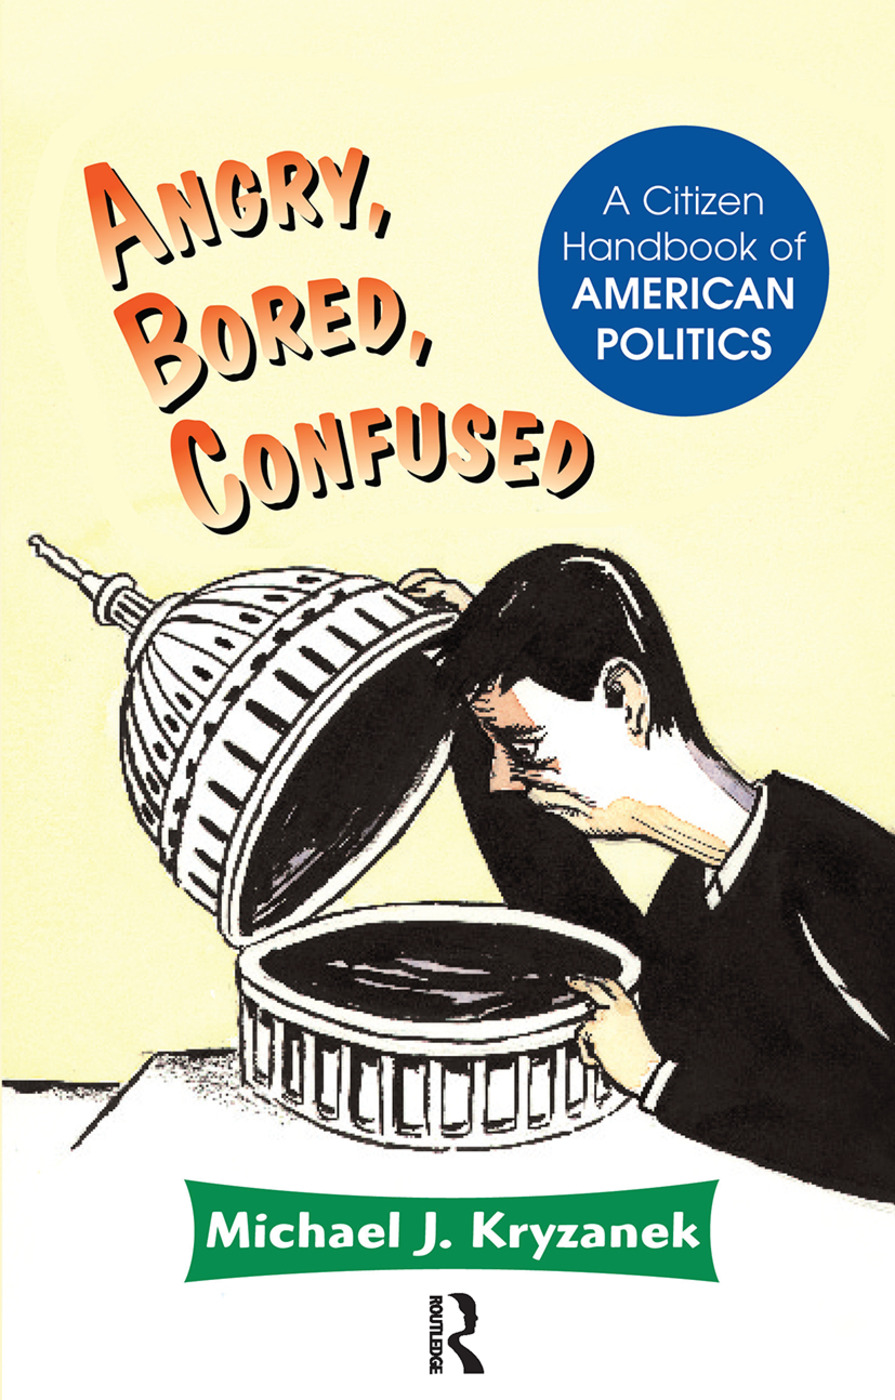 Angry, Bored, Confused: A Citizen Handbook Of American Politics book cover